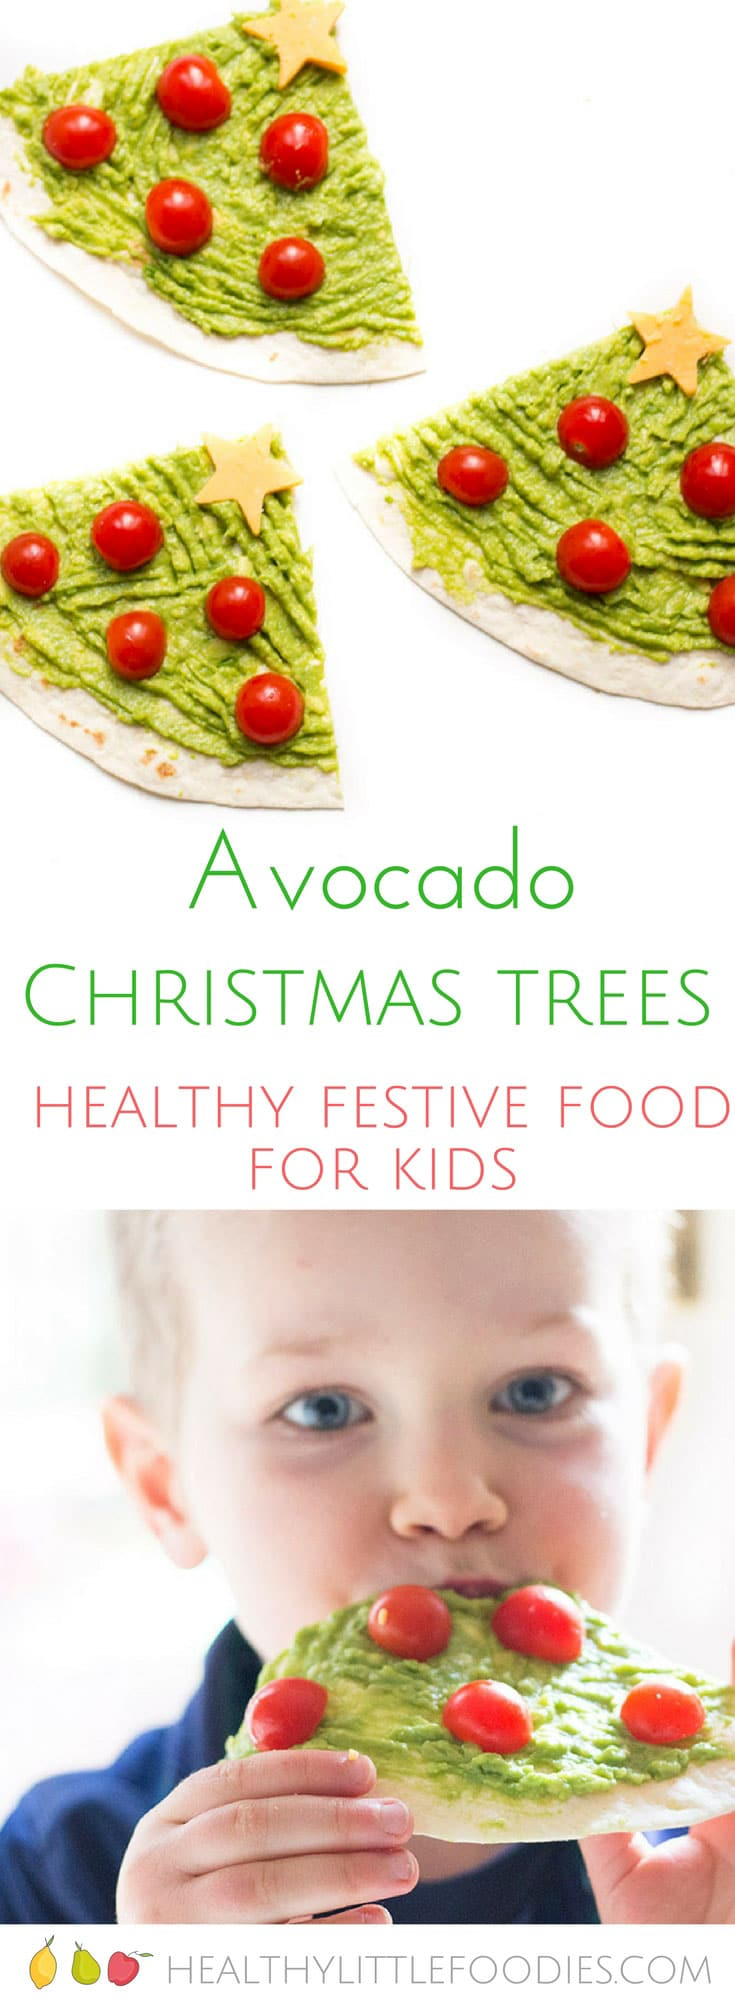 Avocado Christmas trees. A healthy festive food idea for kids. A great lunch in the lead up to Christmas.